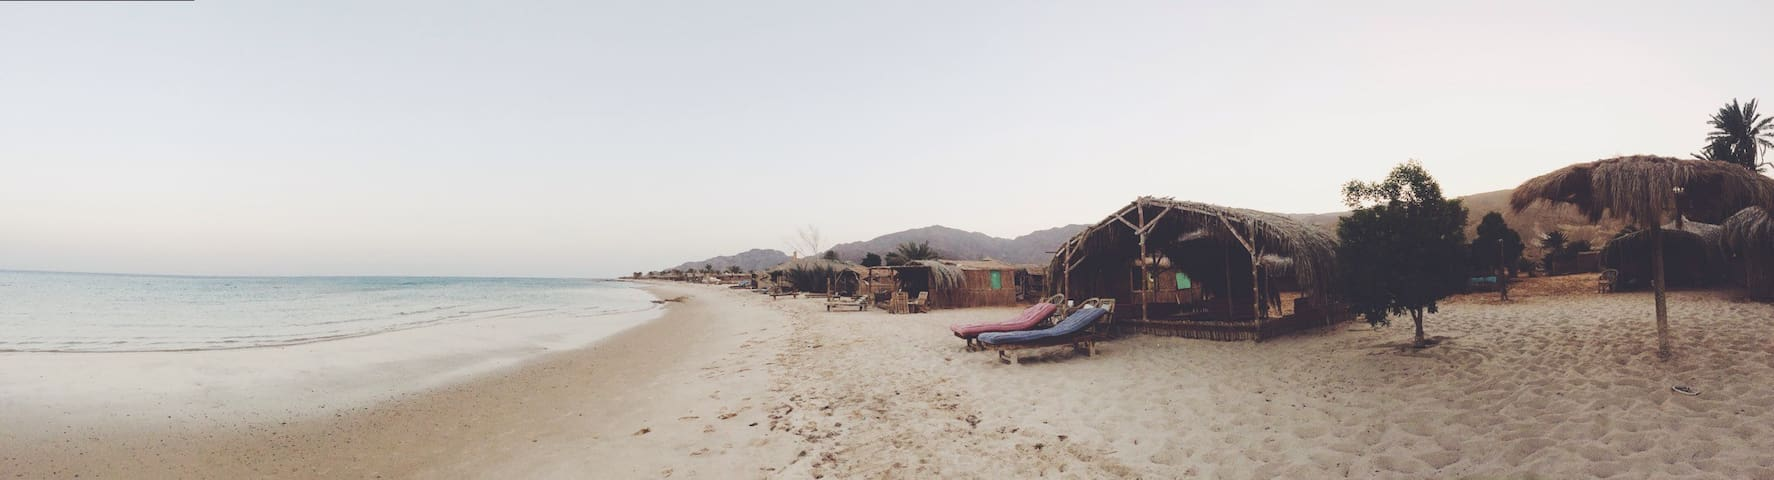 Coral beach it's an ECO camp - Taba - Hut